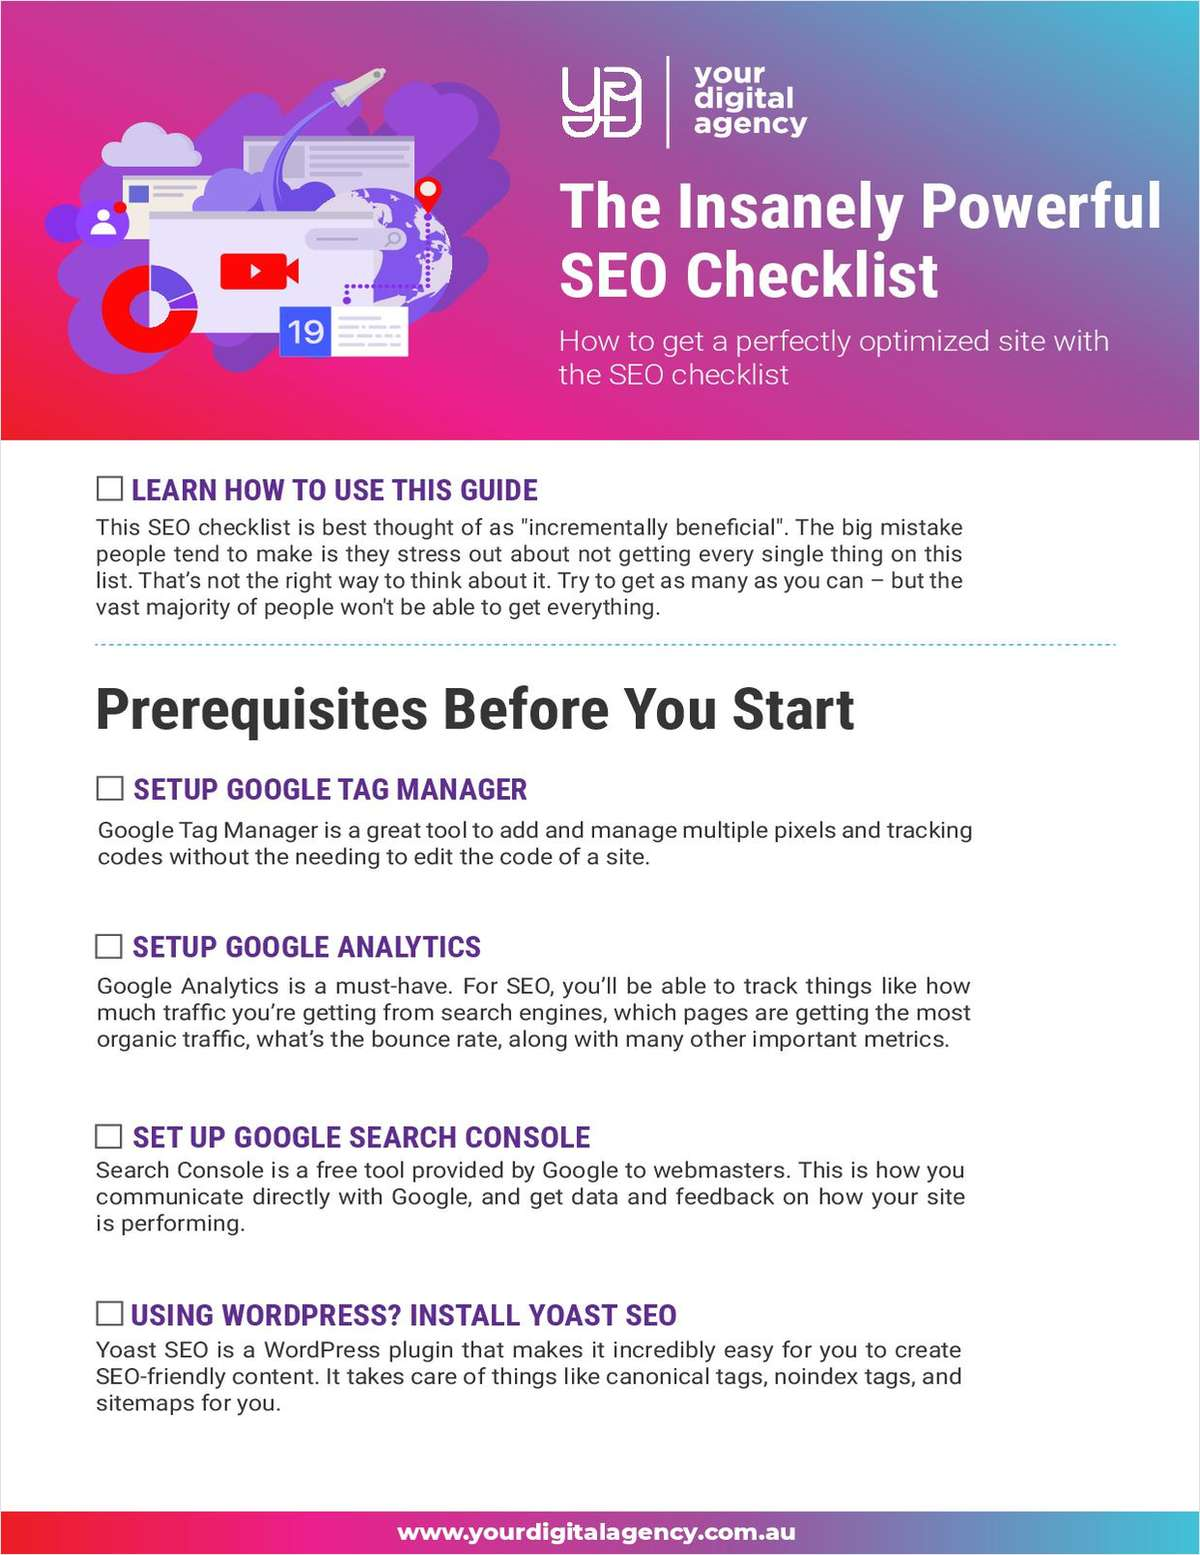 The Insanely Powerful SEO Checklist